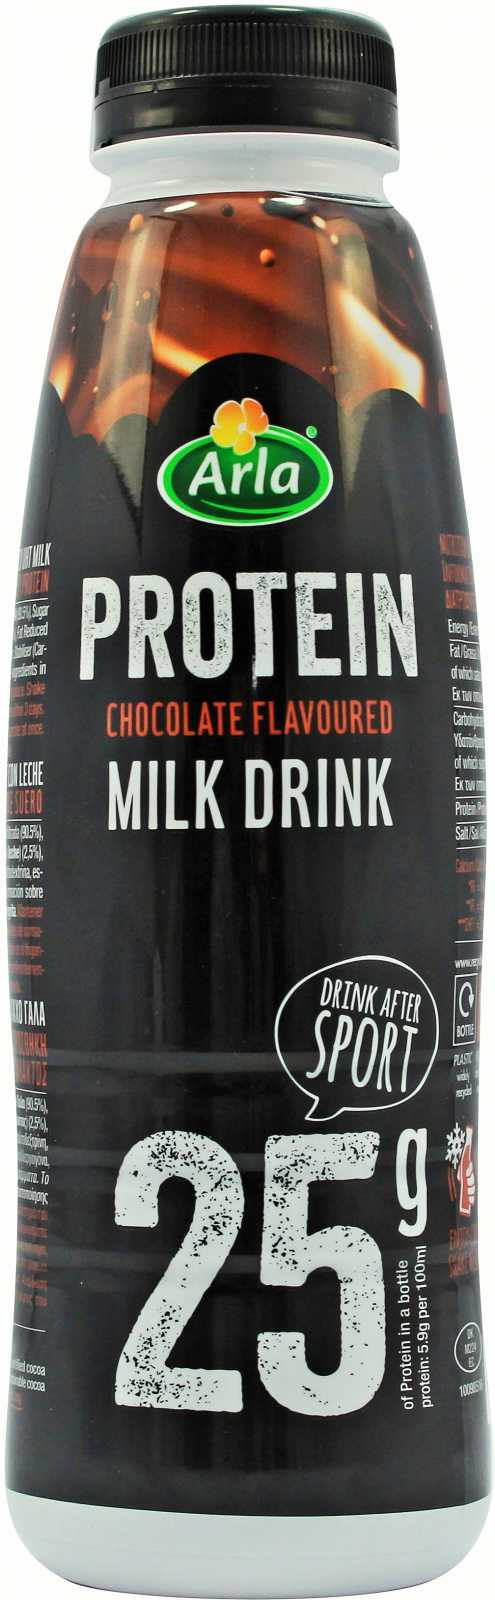 arla proteindrink